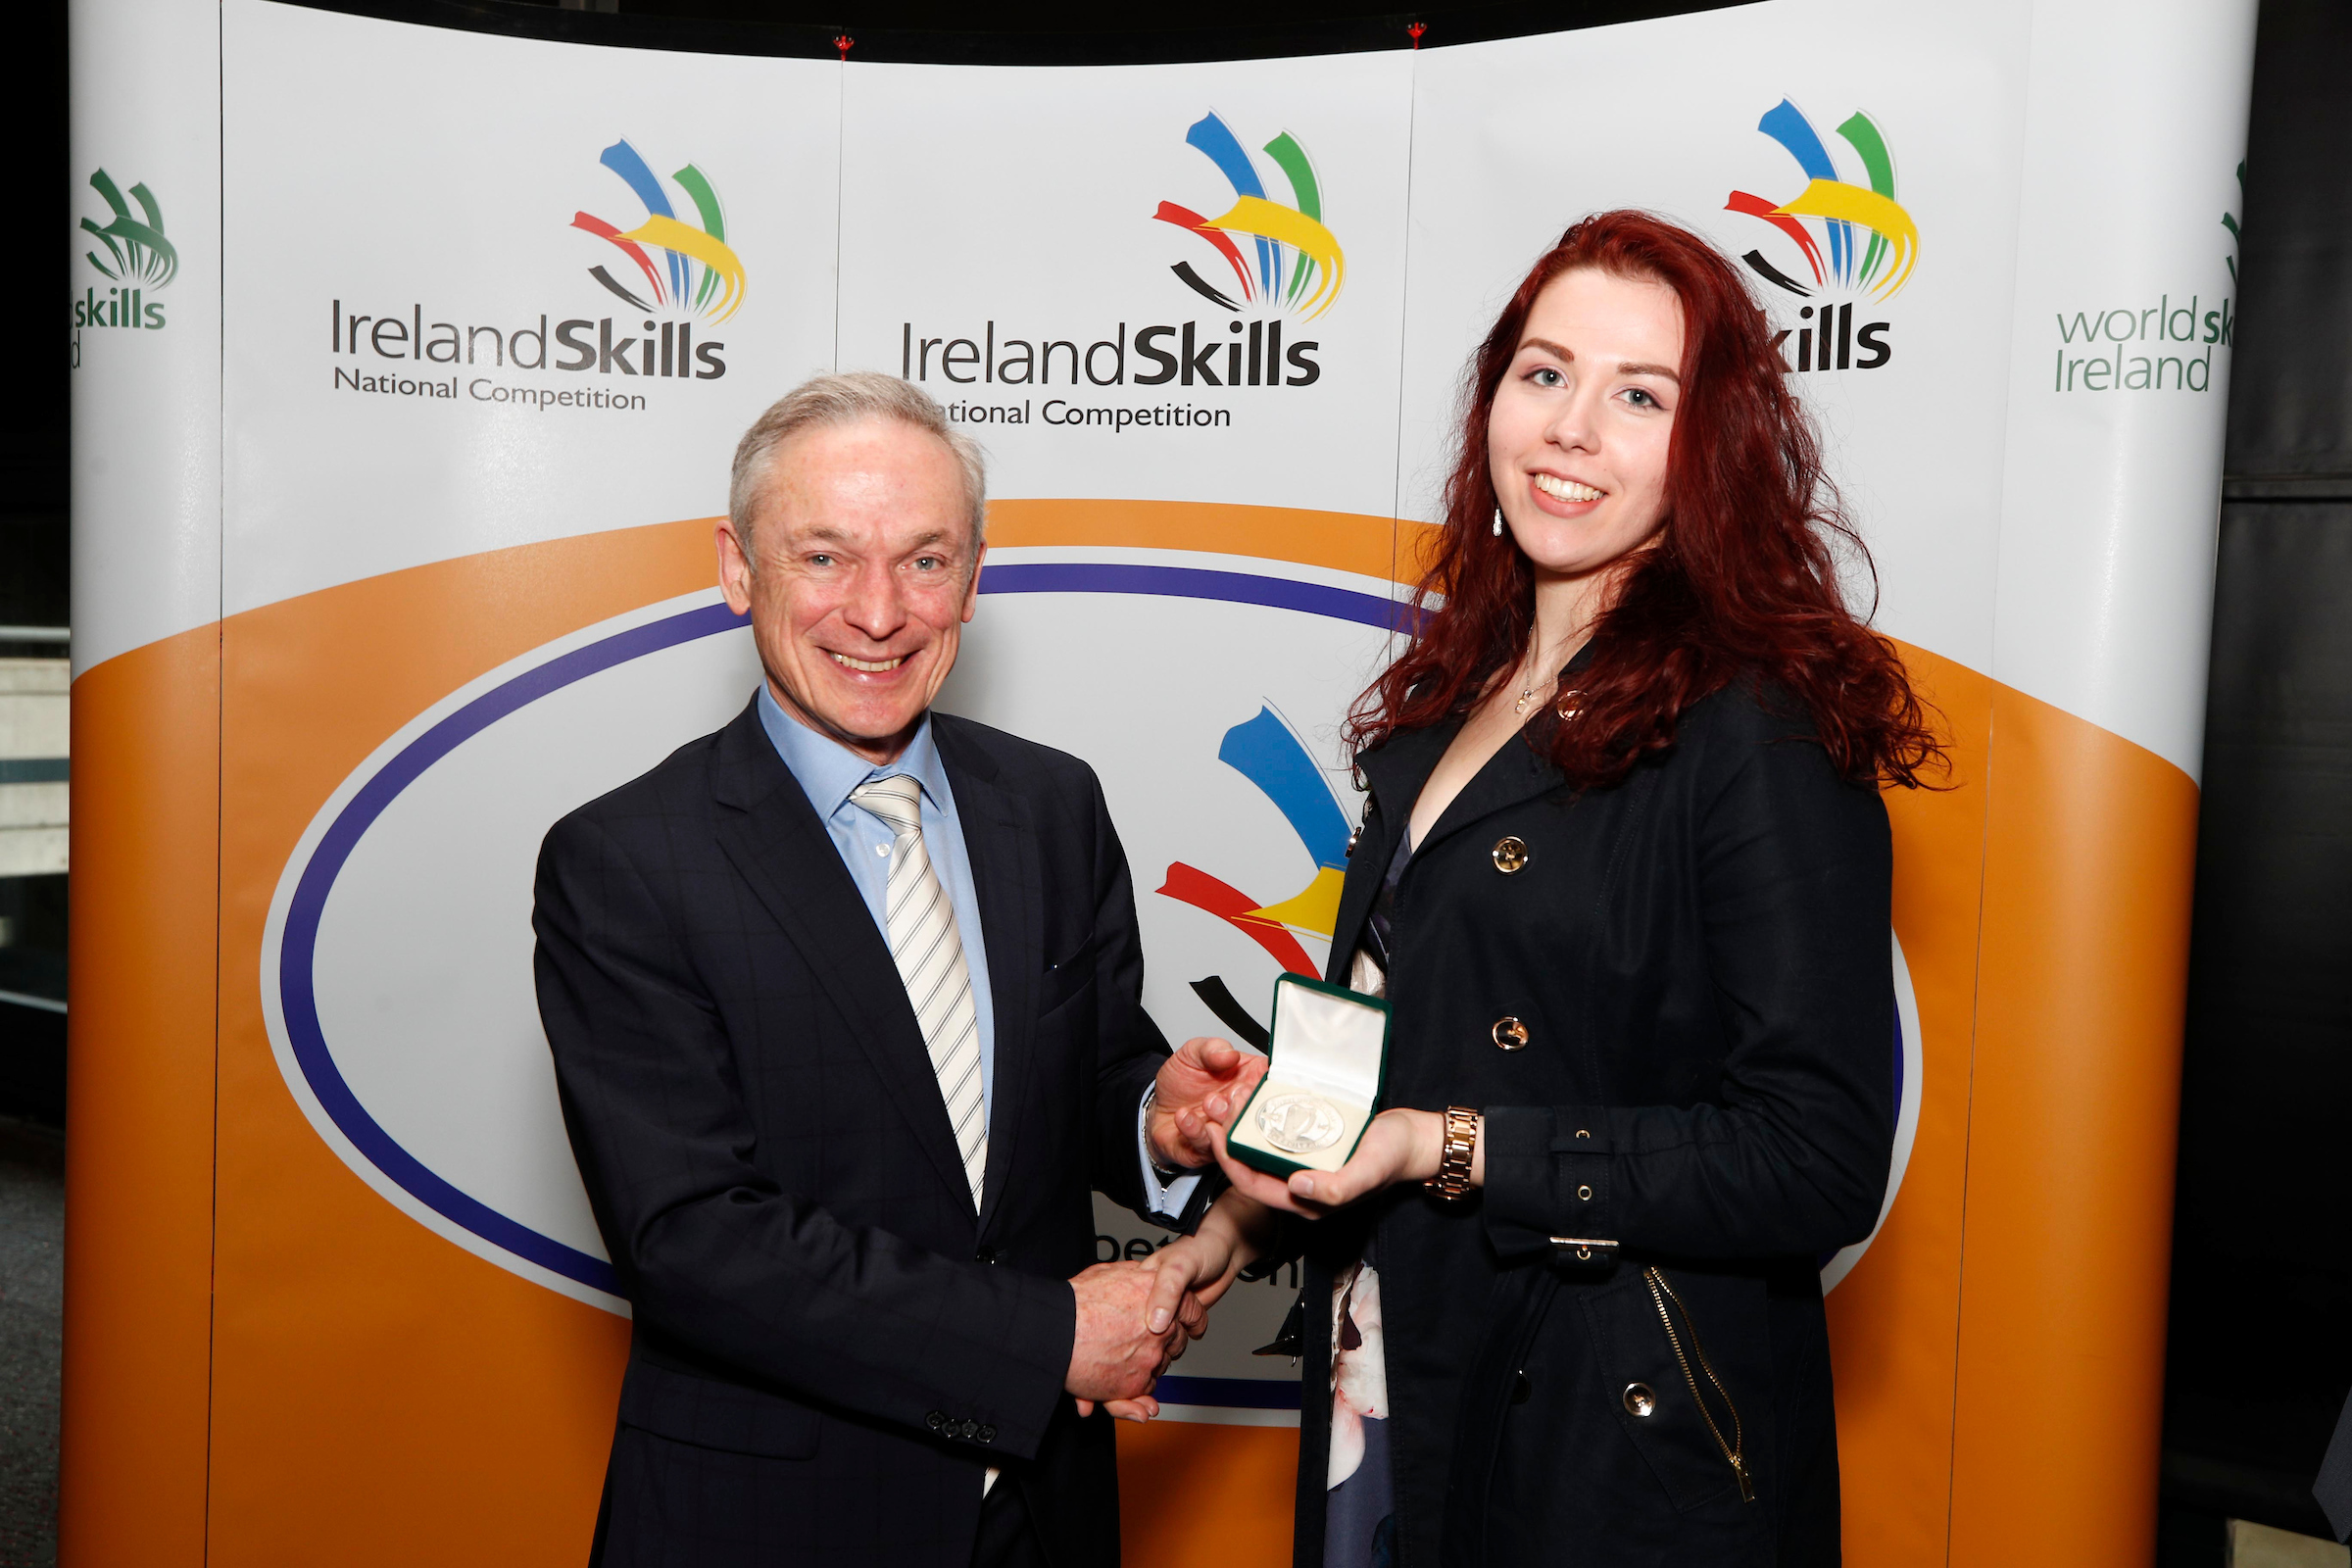 Waterford students at WIT awarded Department of Education and Skills silver medal